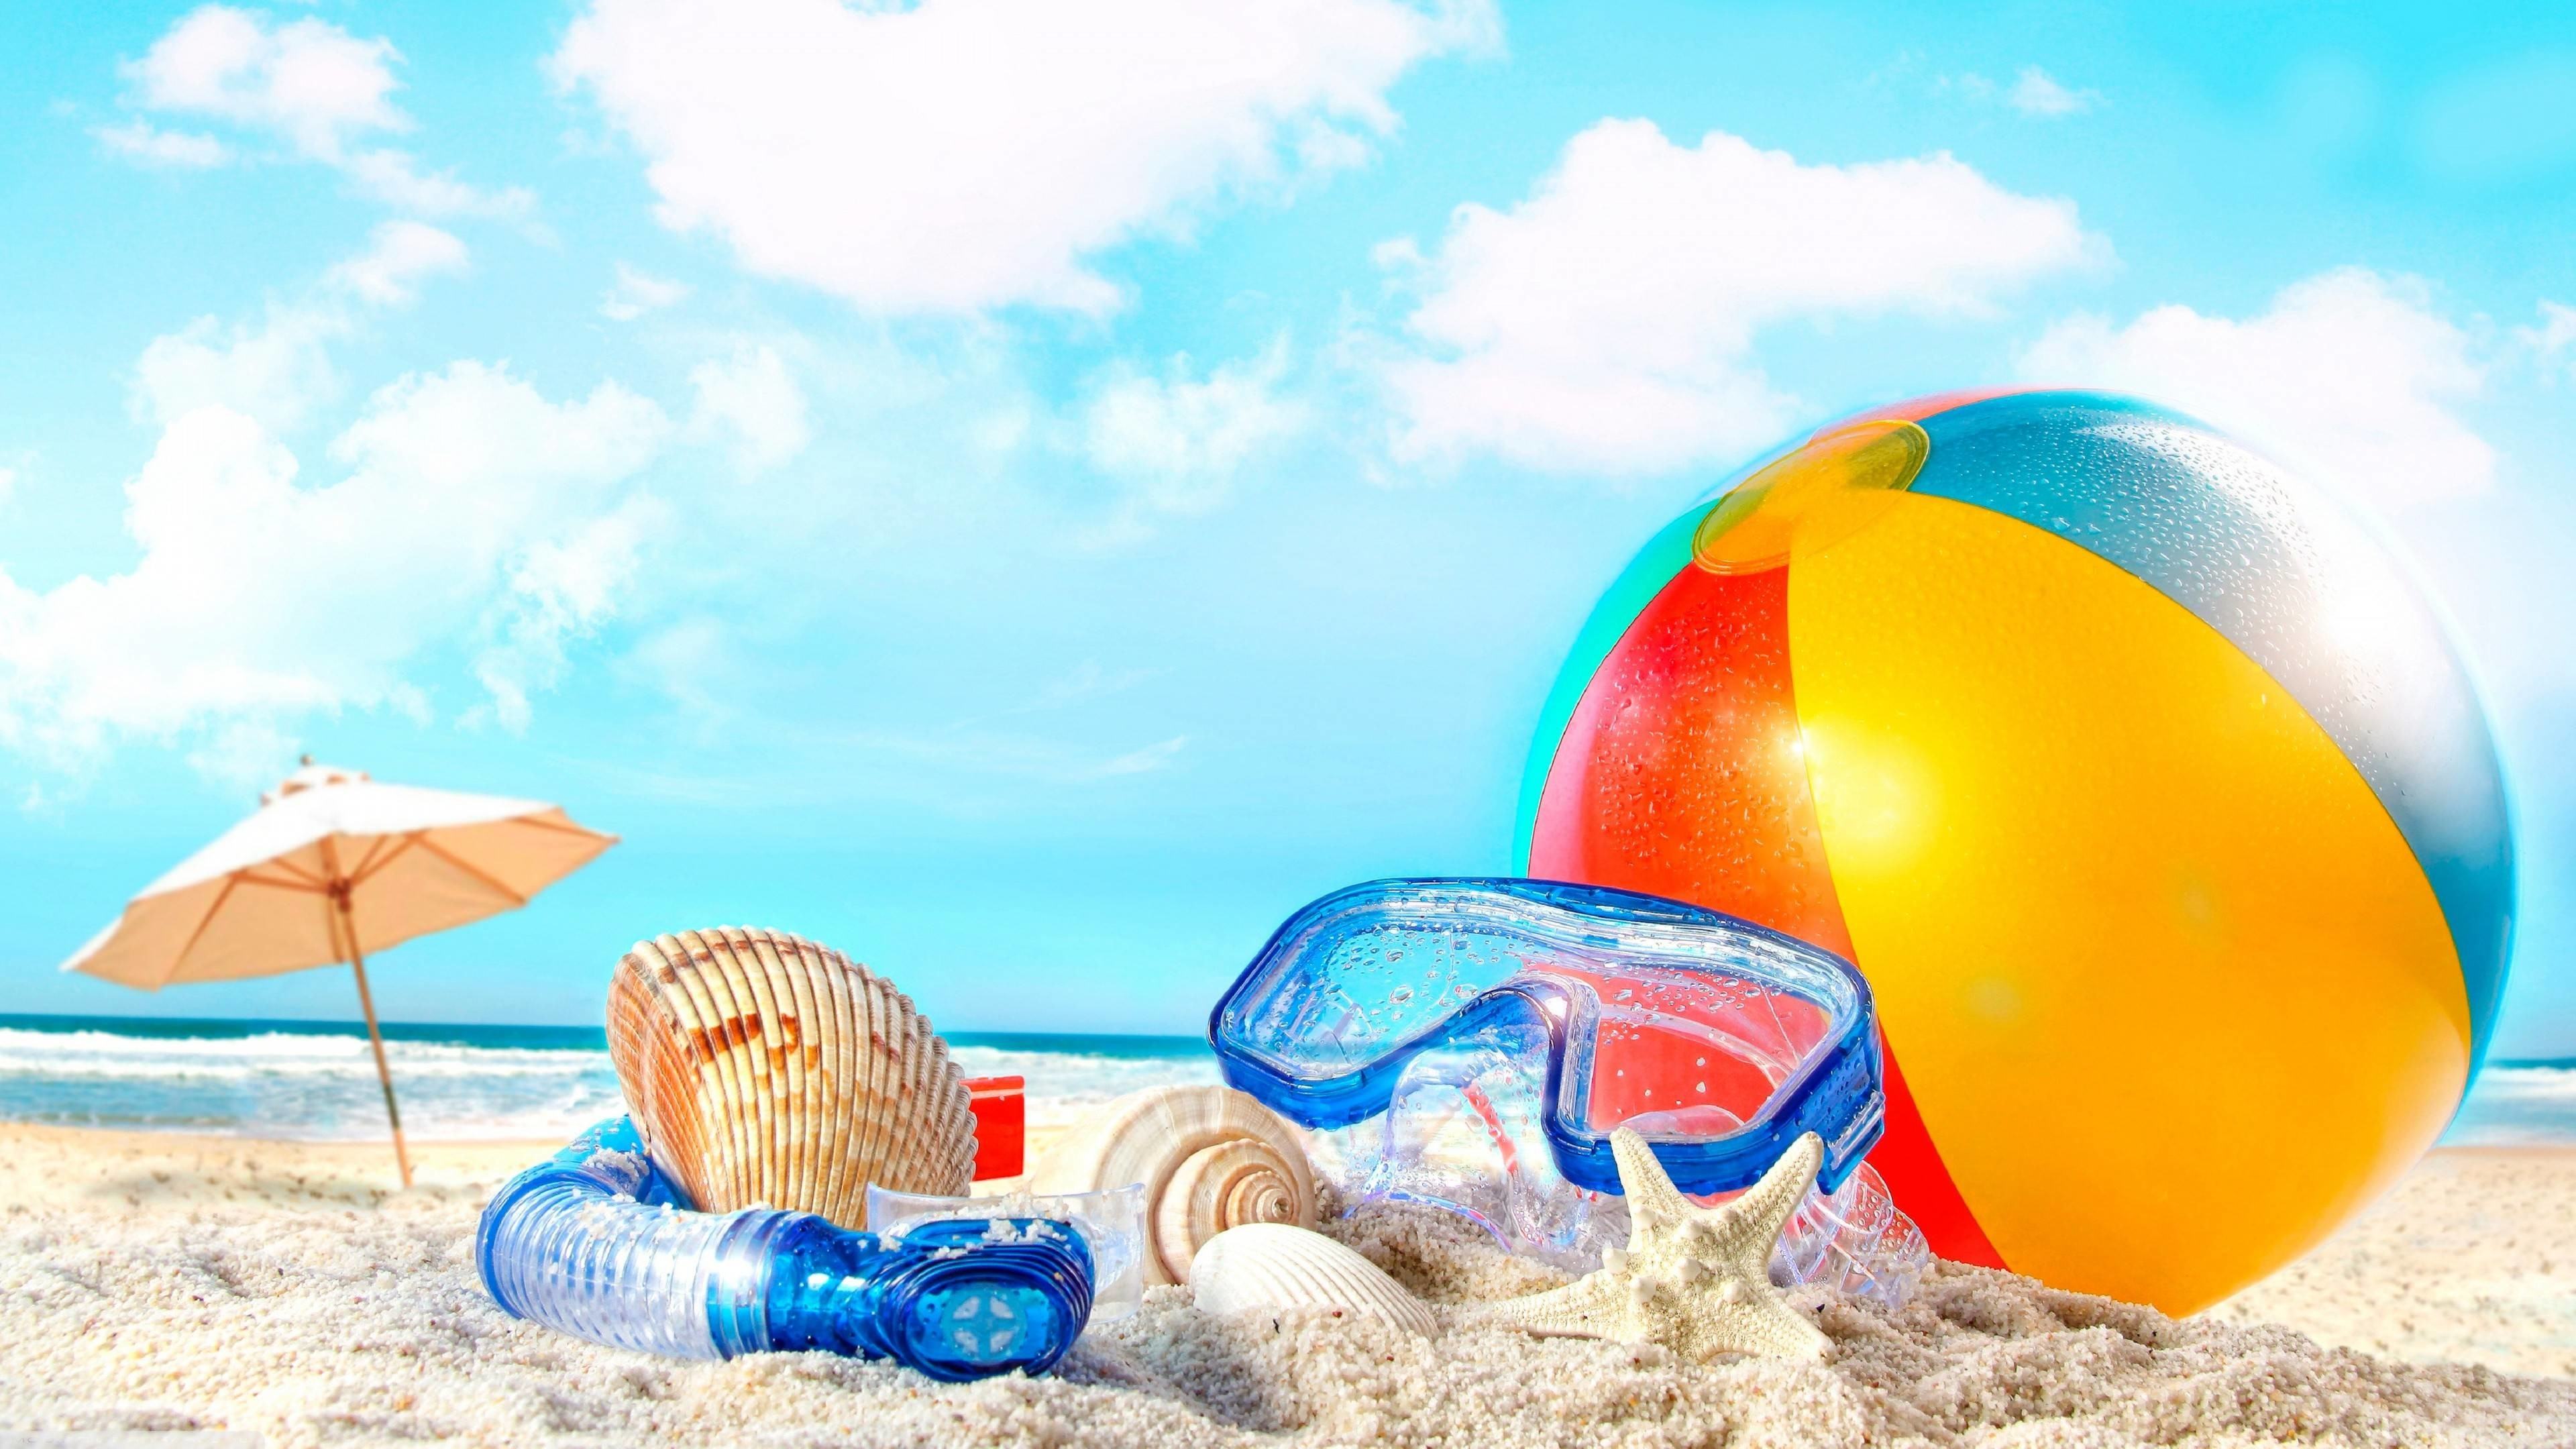 Summer Holliday in the Beach Wallpaper 1080p Free Download.